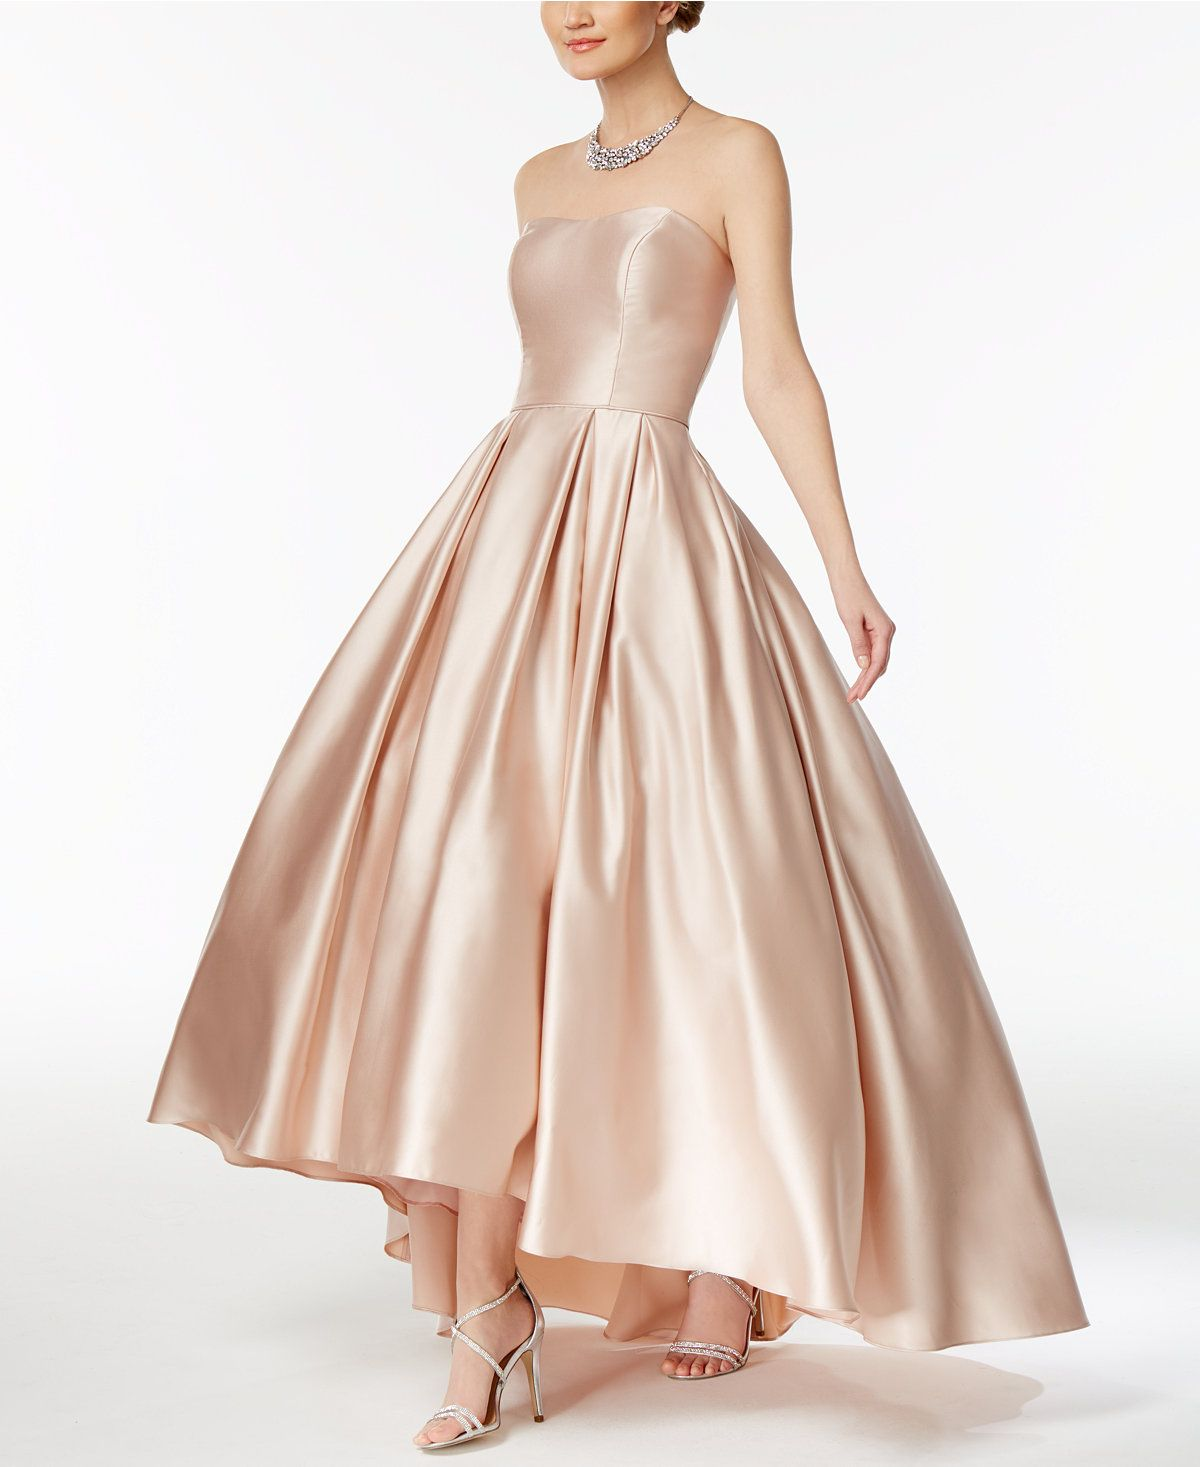 Betsy & Adam Strapless High-Low Ball Gown | Ball gown dresses, High ...